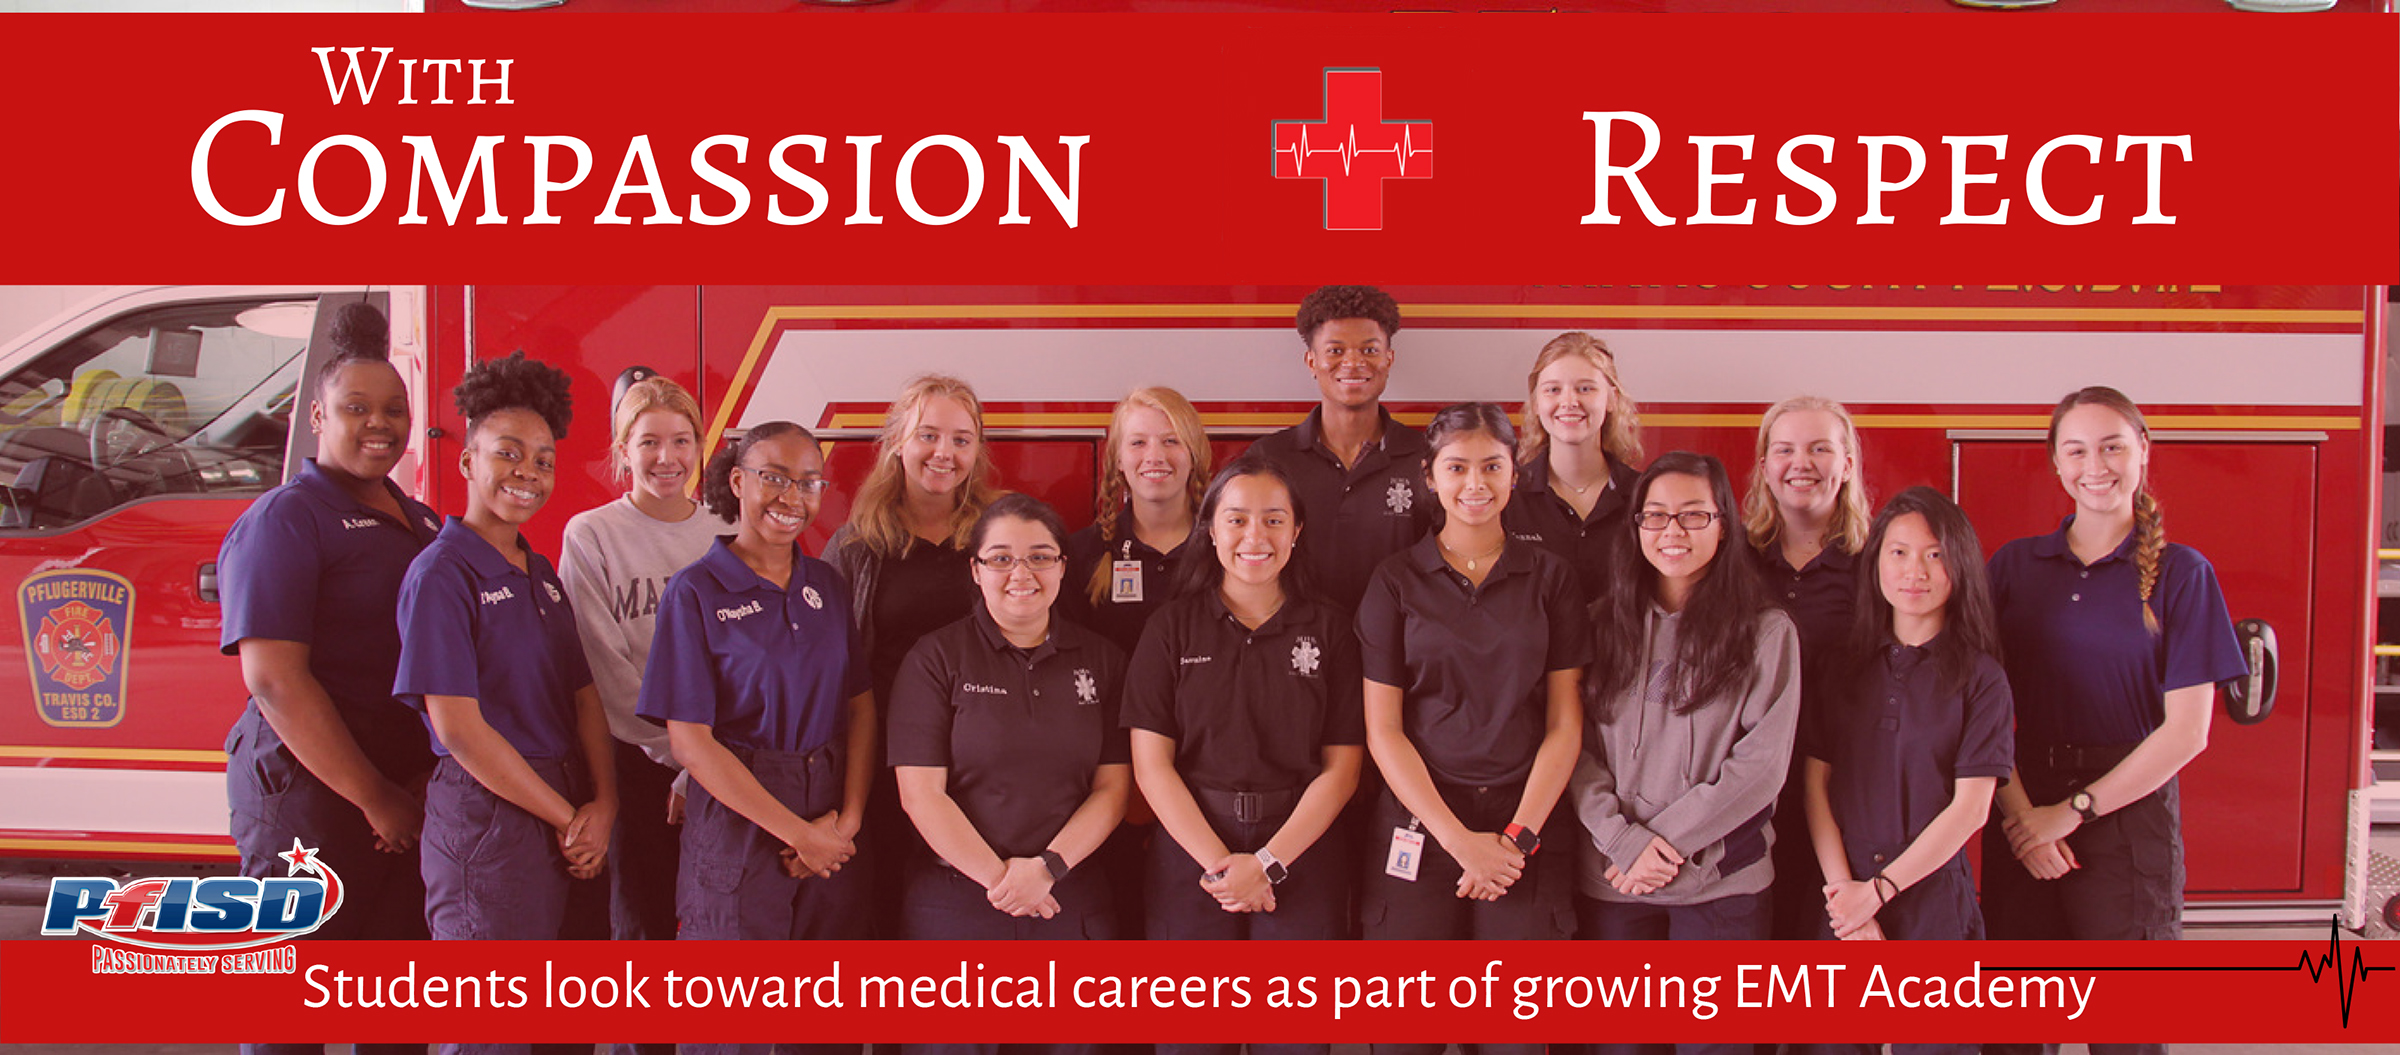 EMT Academy expands in its second year